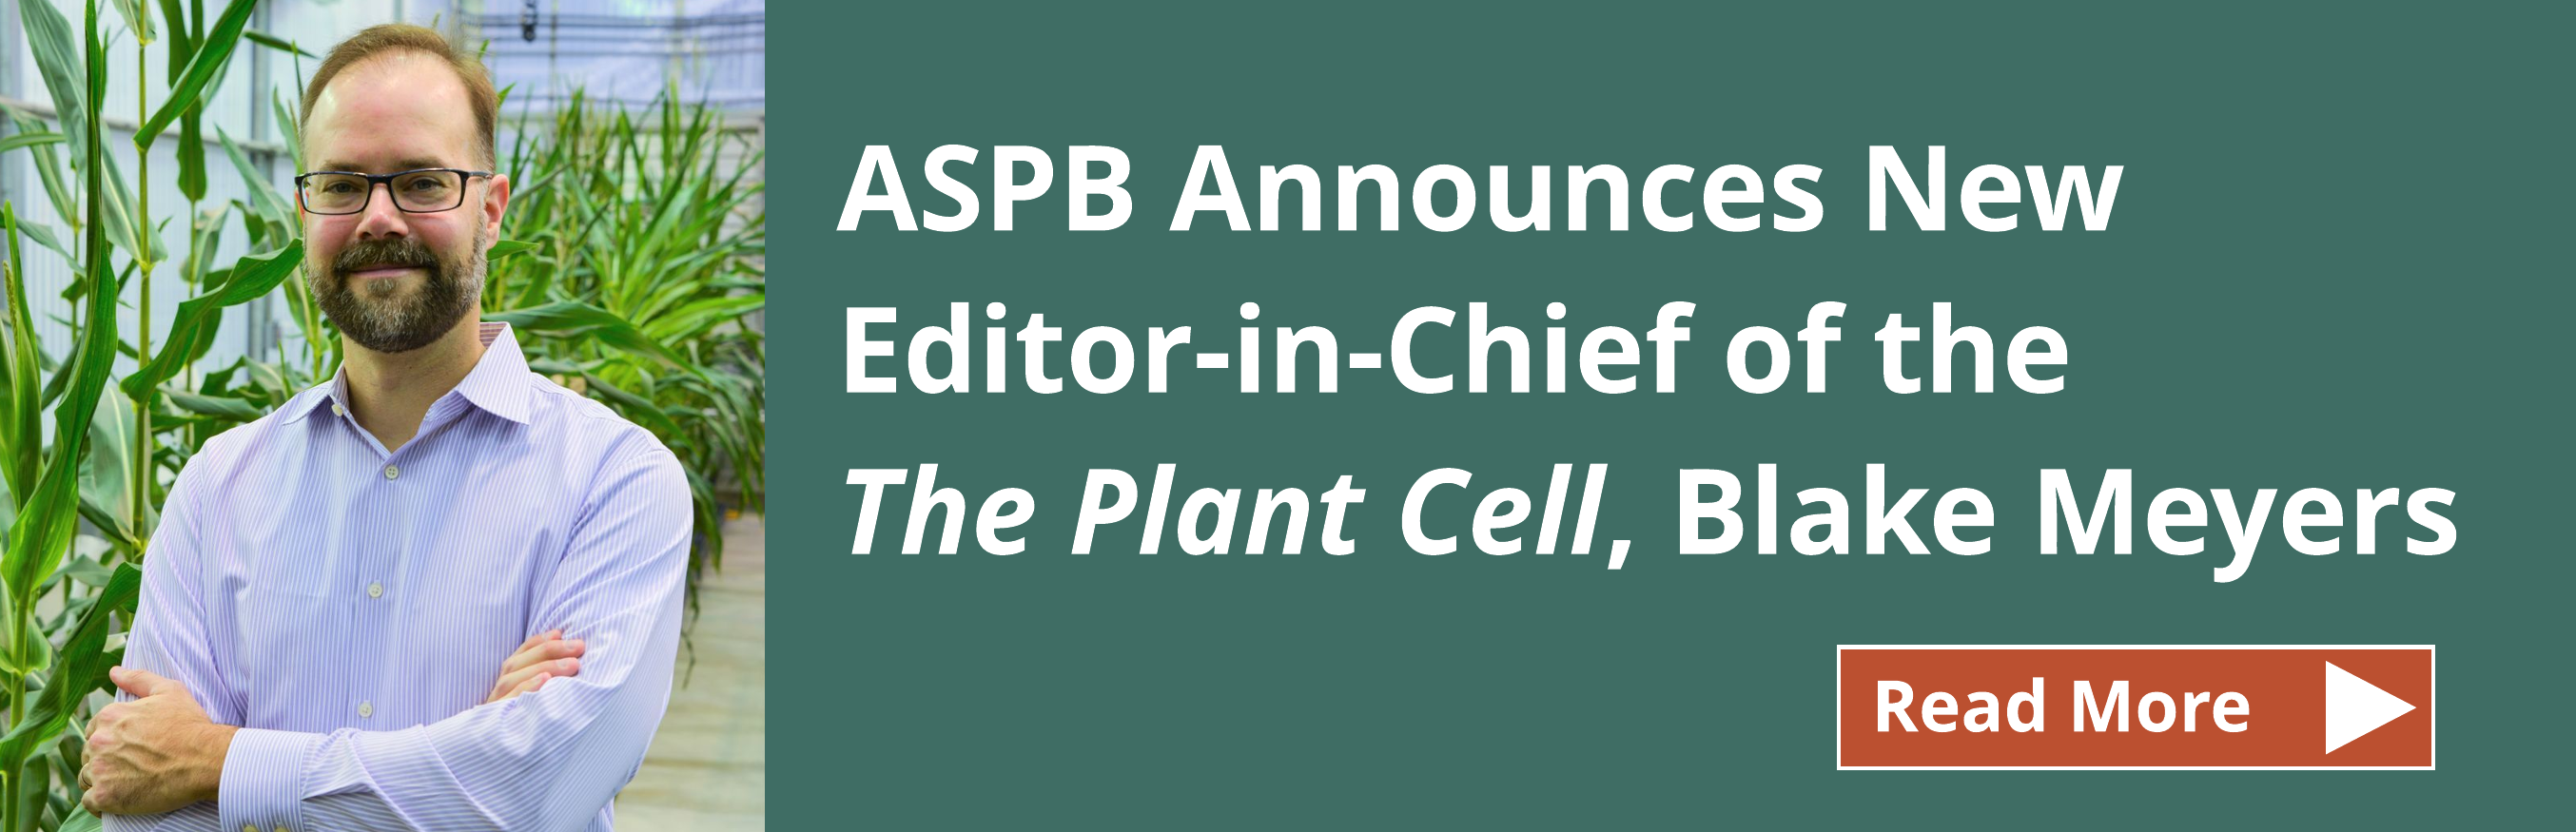 ASPB Announces New Editor in Chief of the Plant Cell Blake Meyers